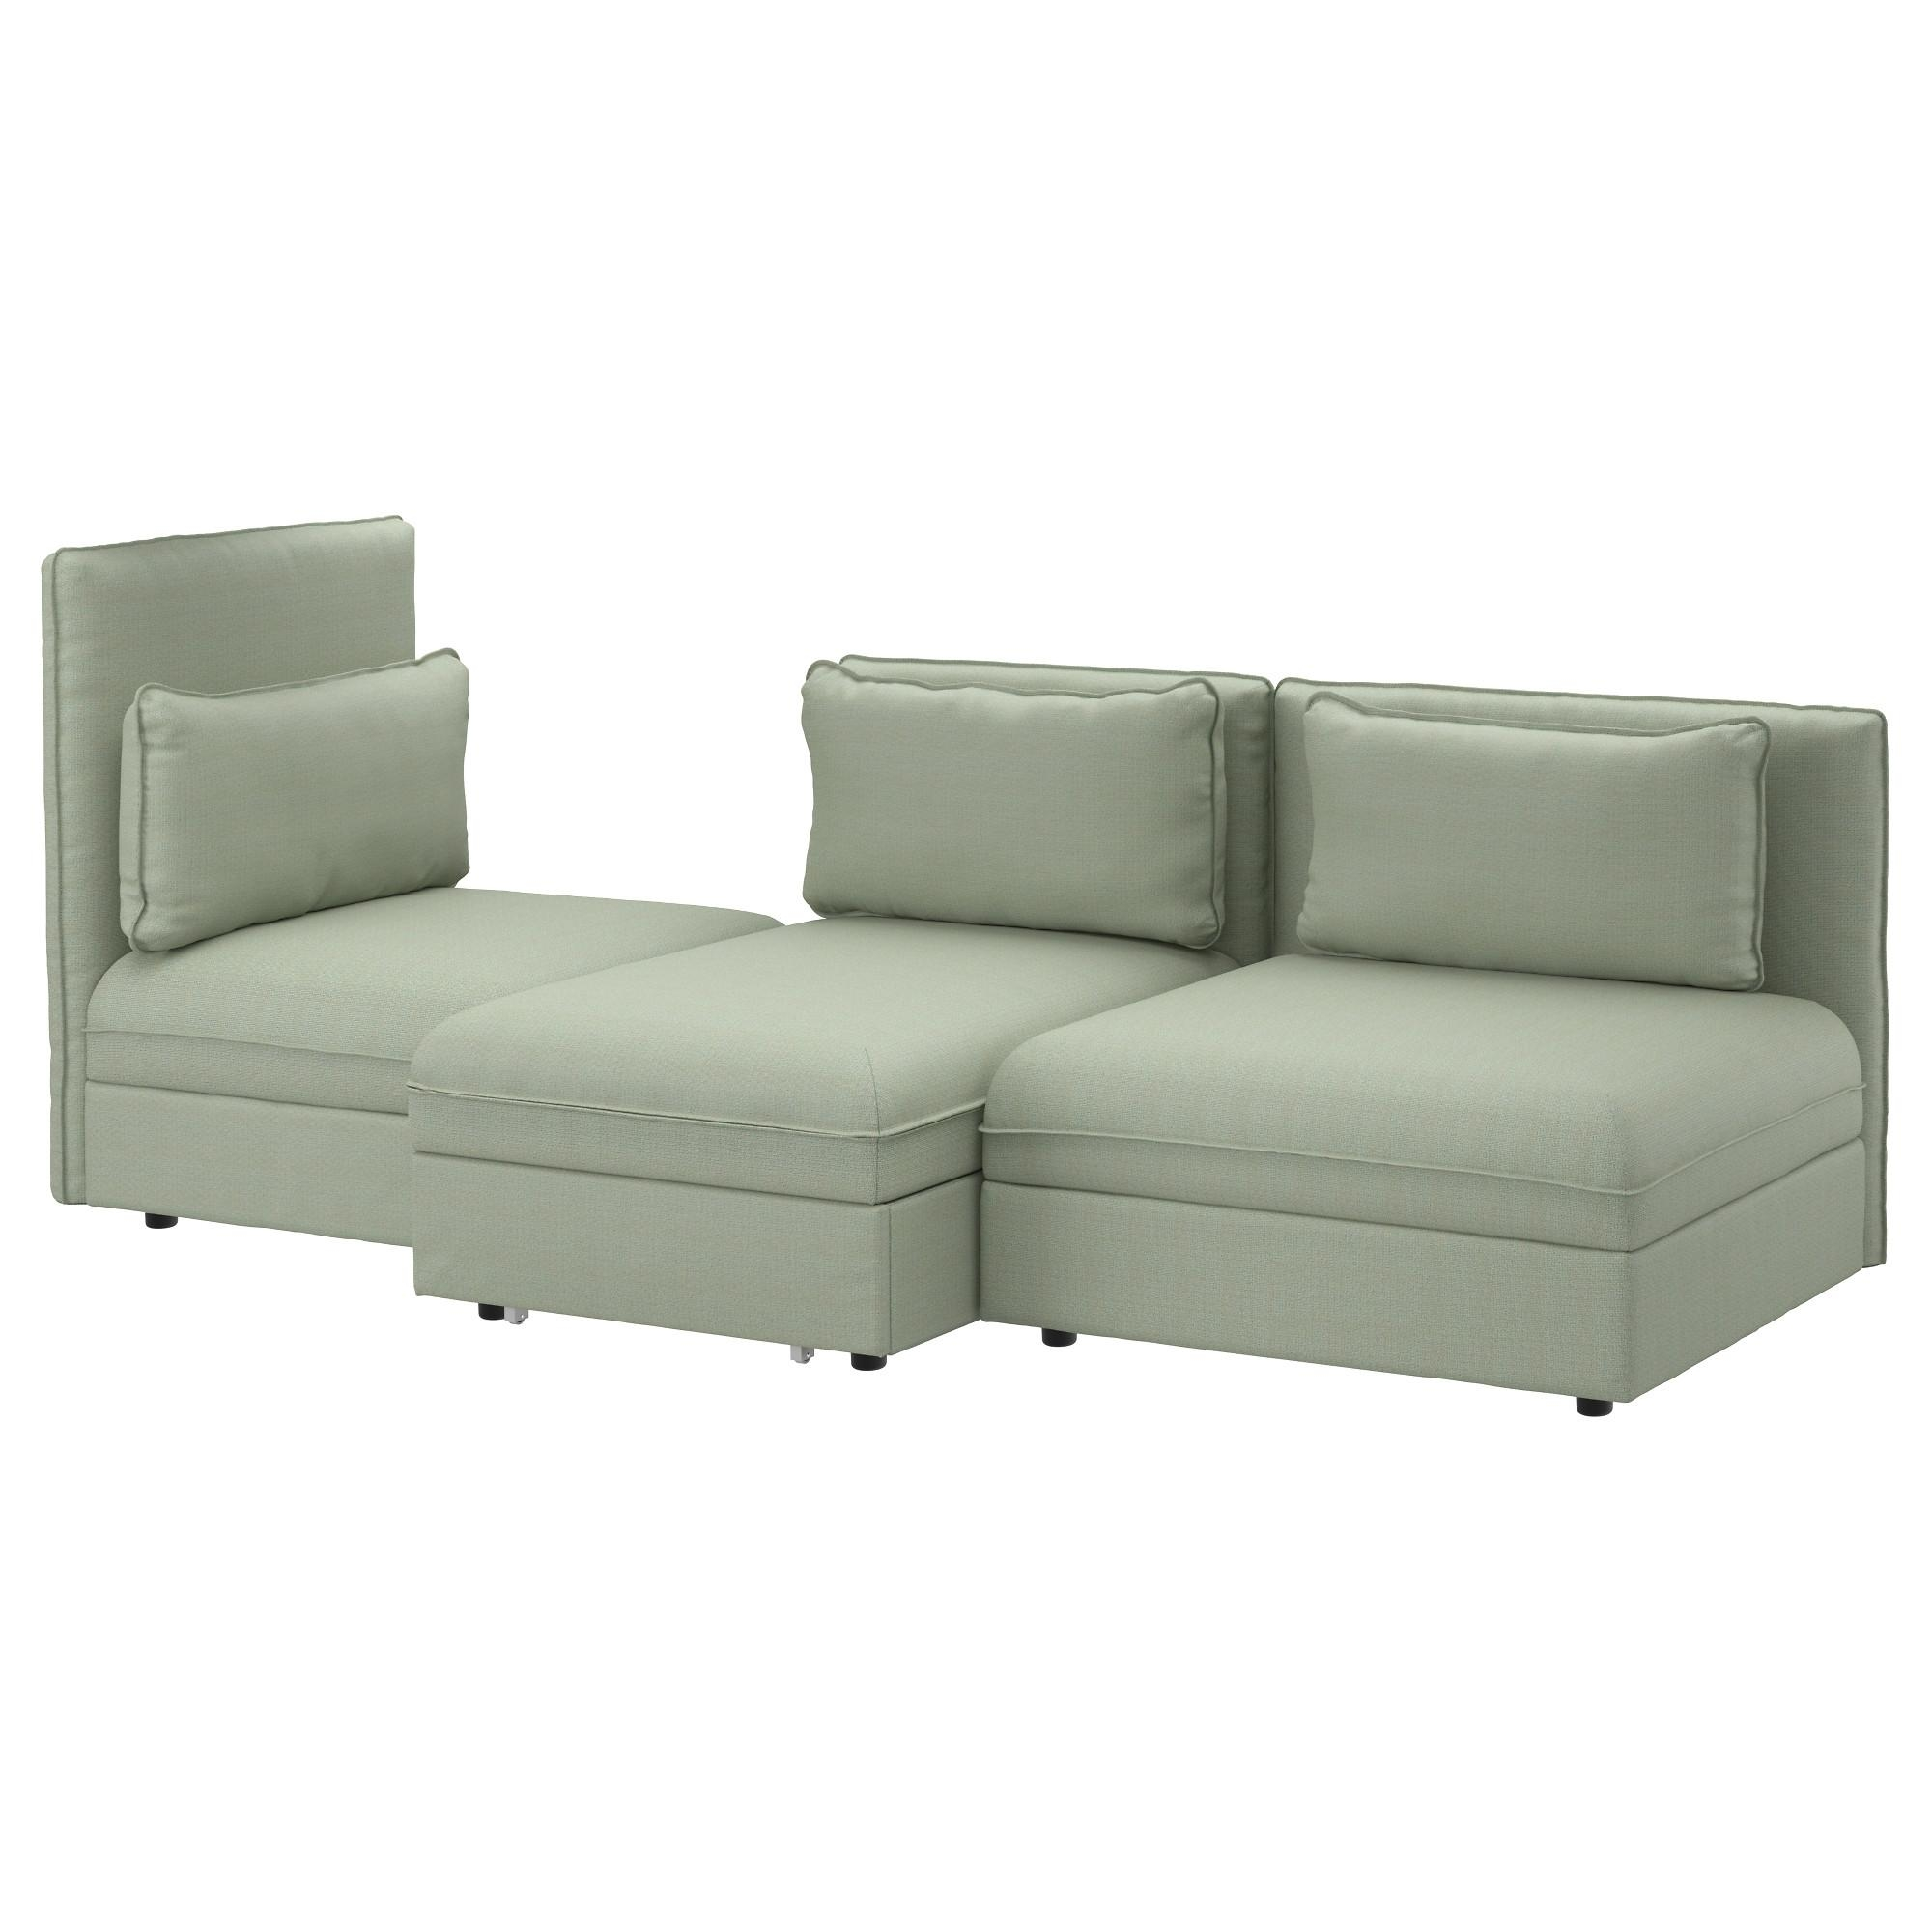 Sofa Beds & Futons – Ikea With Sectional Sofa Bed With Storage (View 18 of 20)